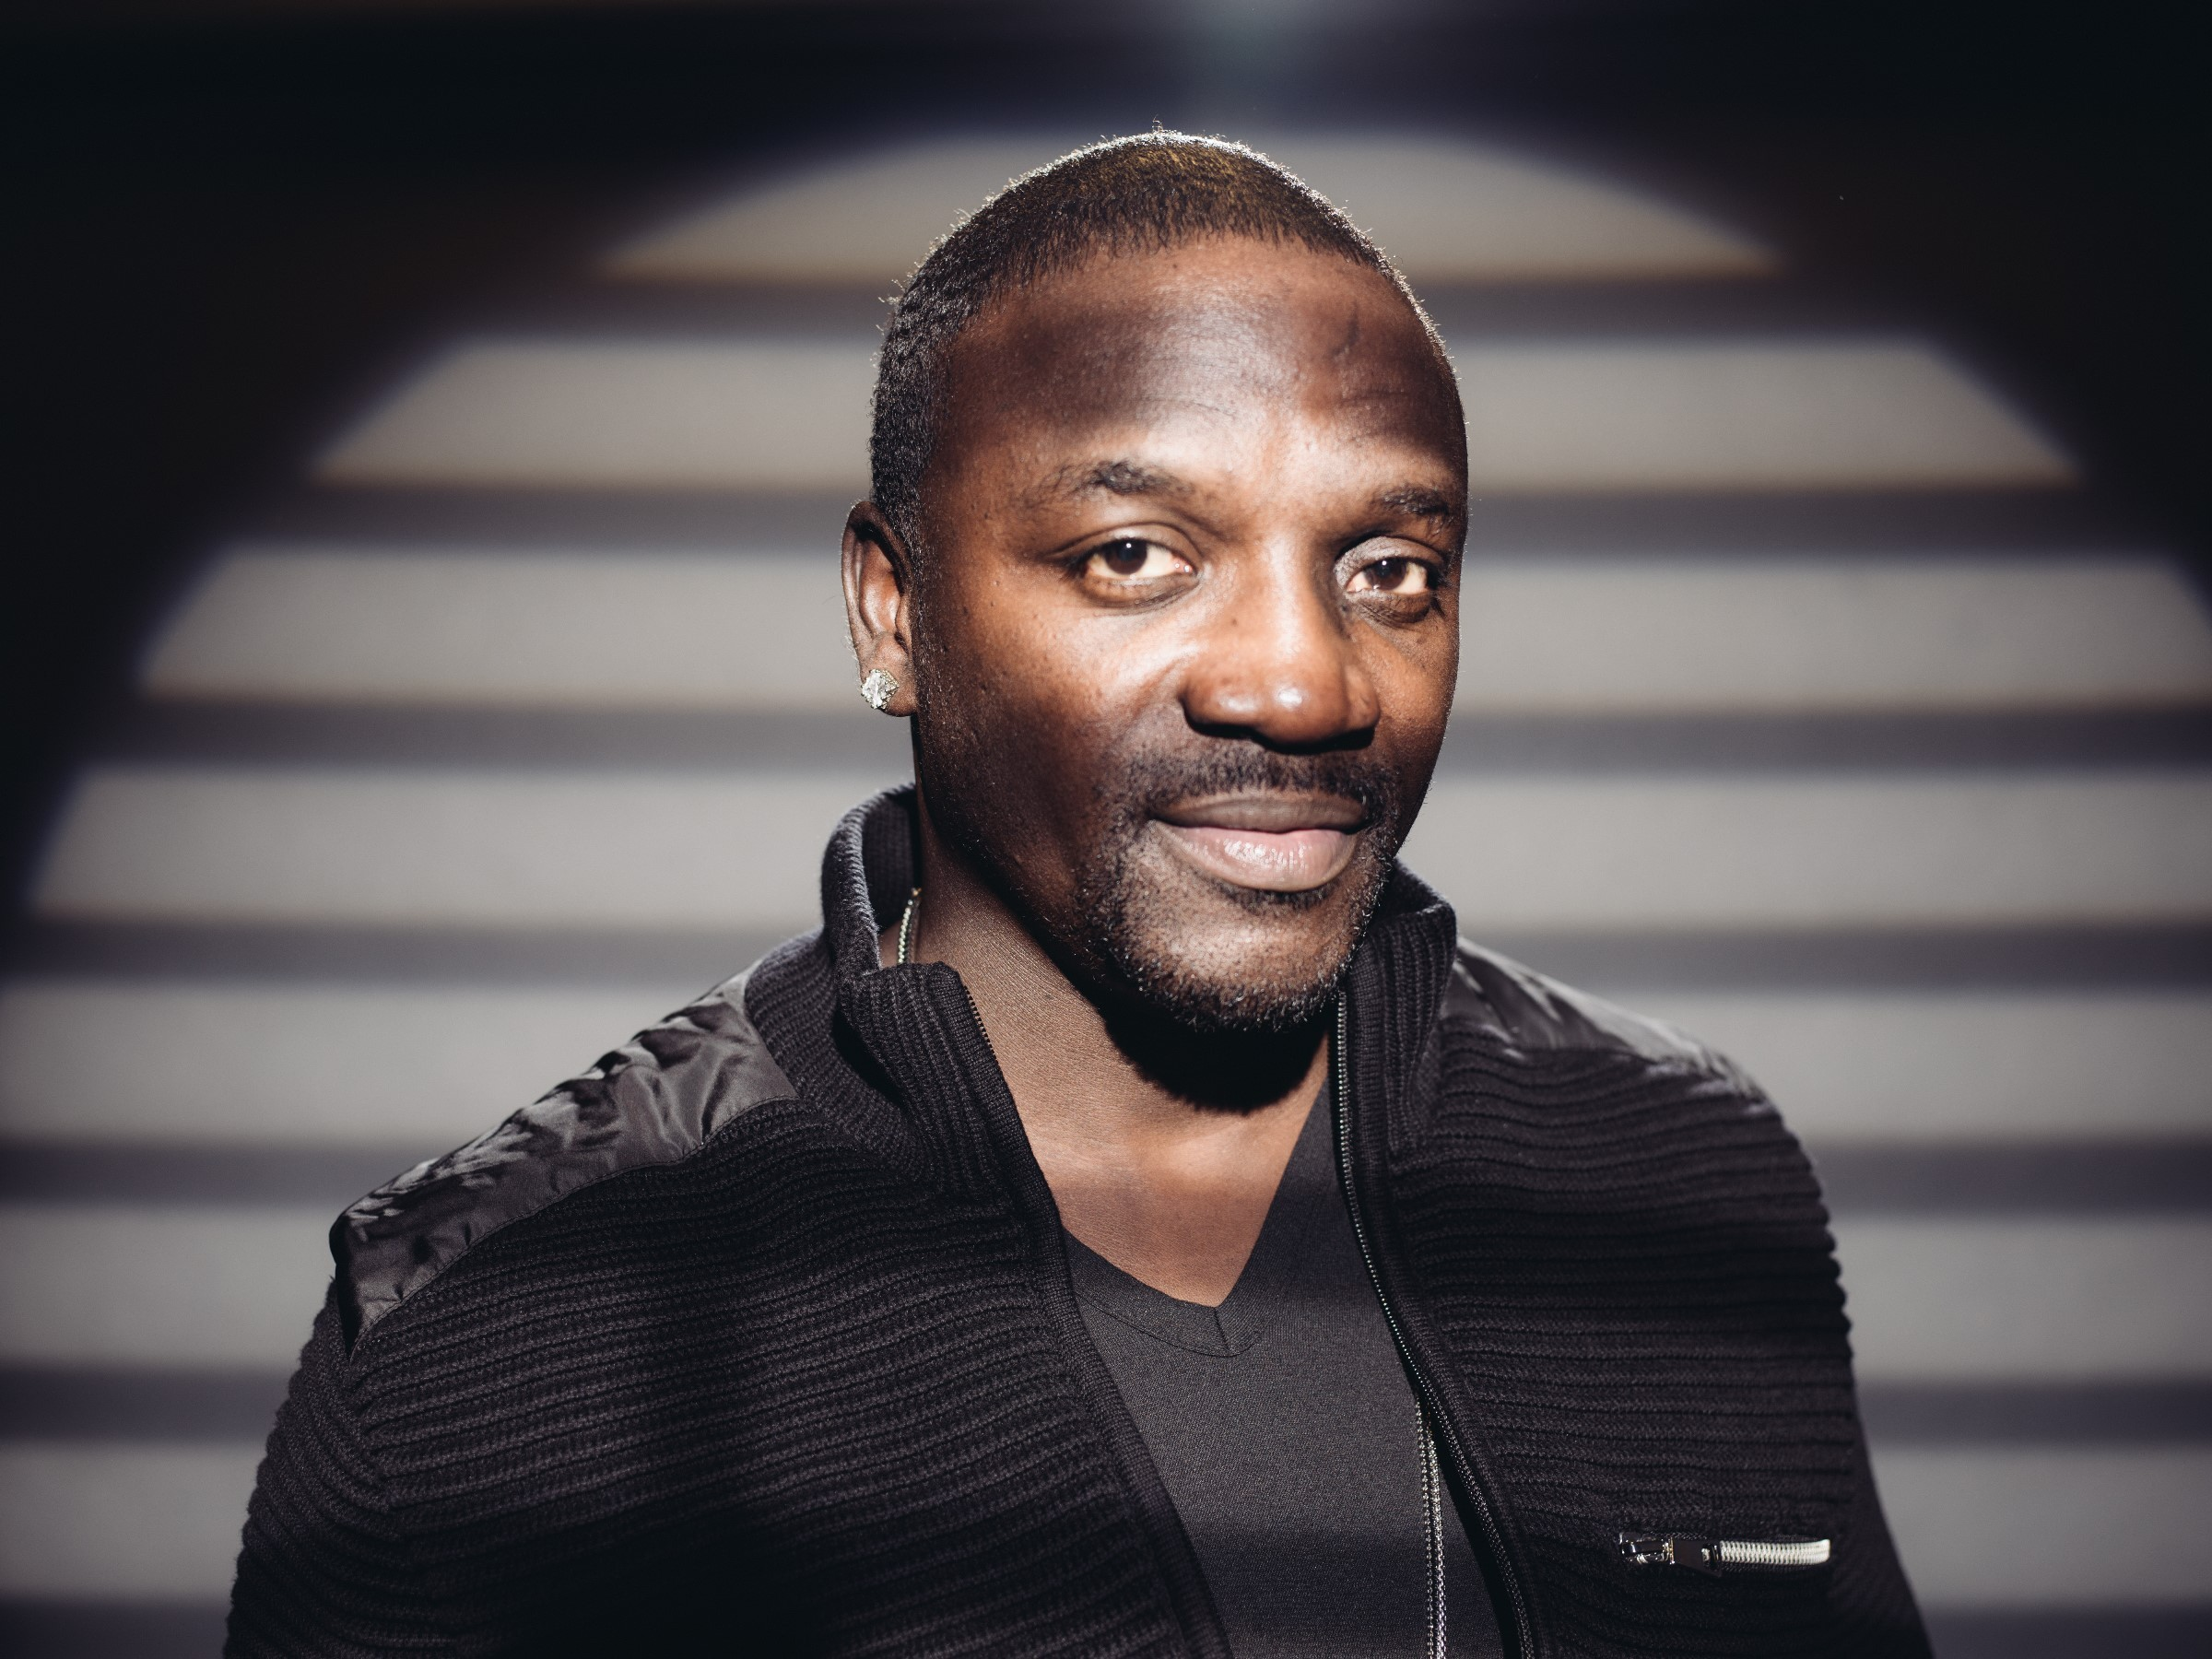 Akon lana clipe de novo single, 'Tell Me We're OK' (Foto: Casey Curry/Invision/AP)